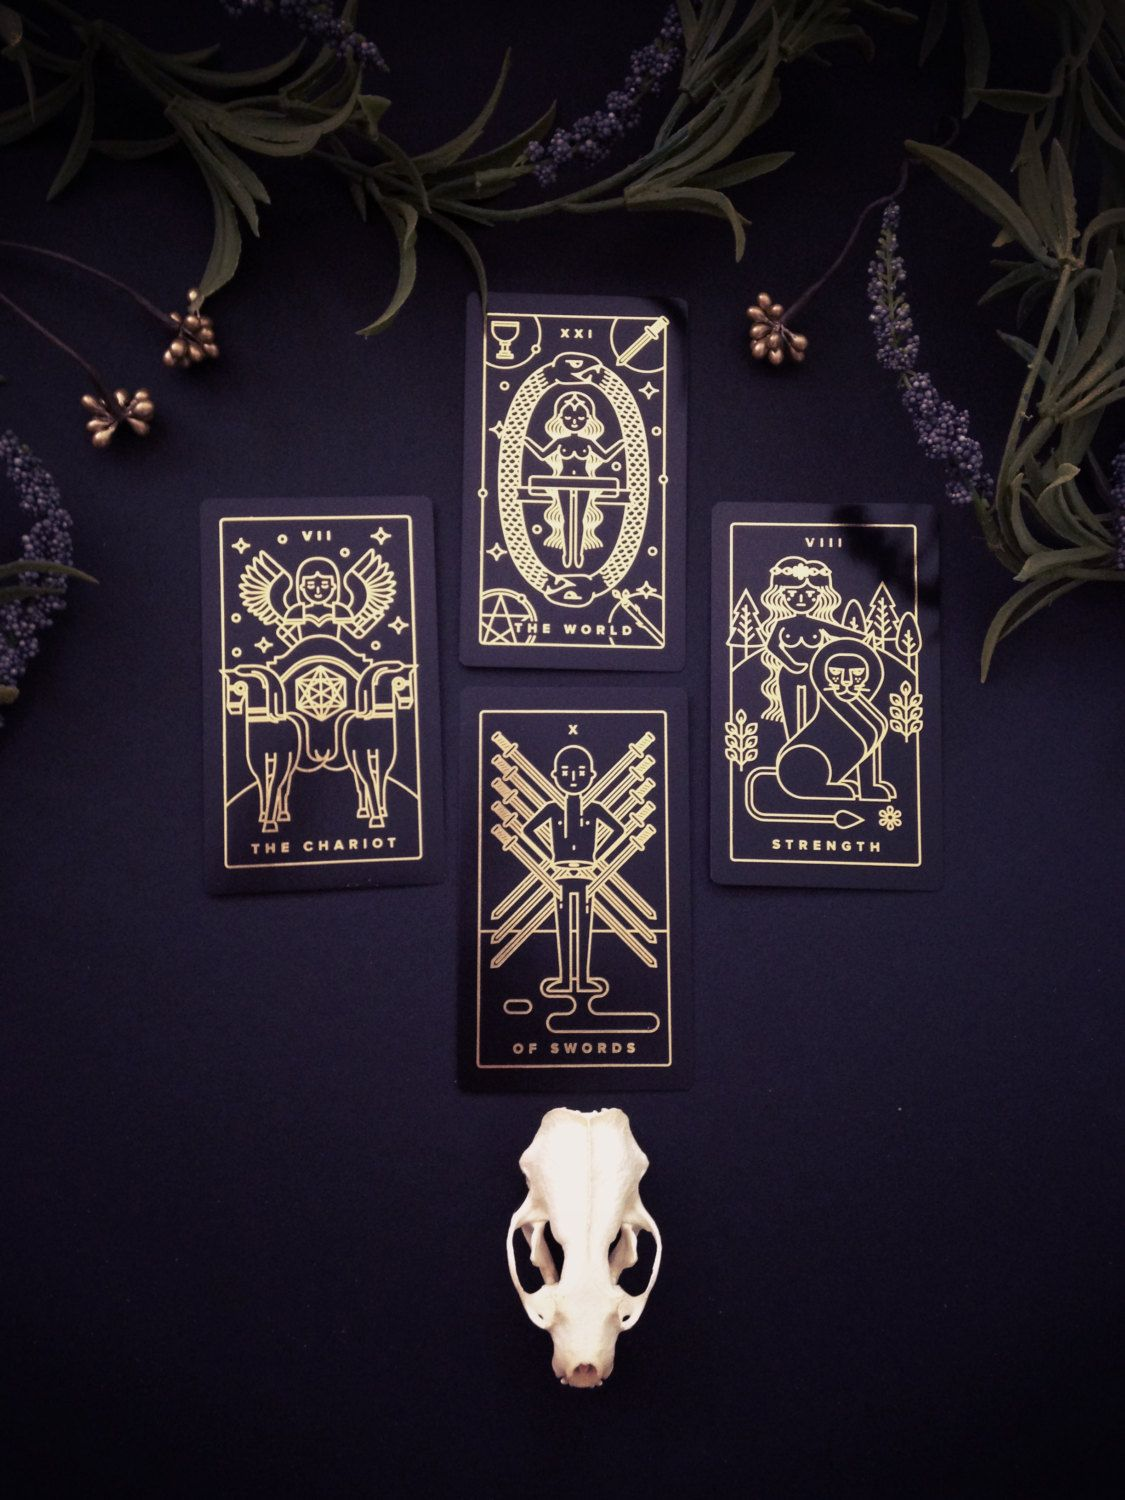 If you ever wanted to learn tarot, the Golden Thread Tarot Deck uses a modern approach to tarot with simple symbols and a way to learn tarot with a completely free companion app.